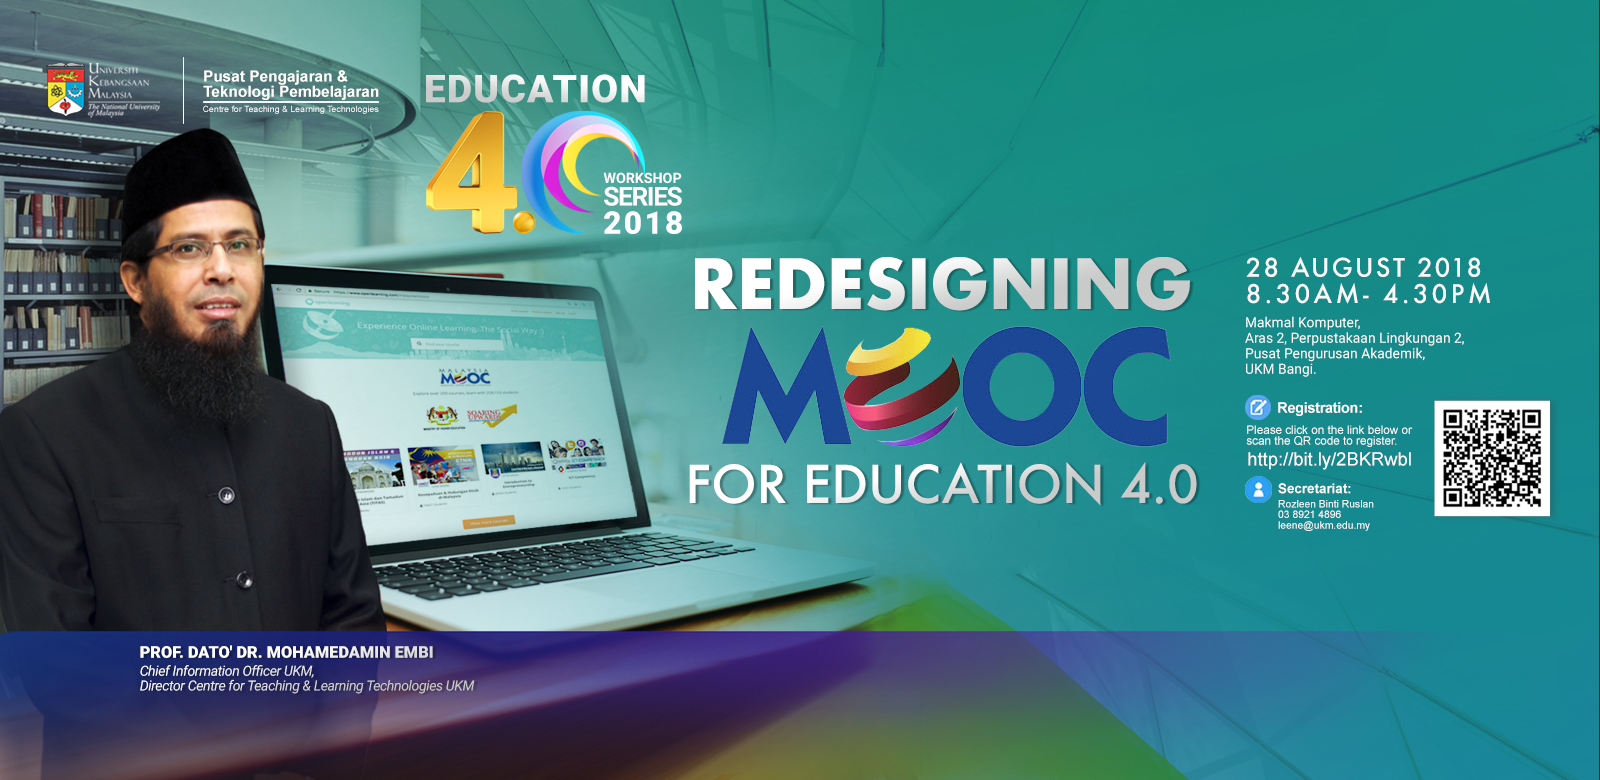 Redesigning MOOC for Education 4.0